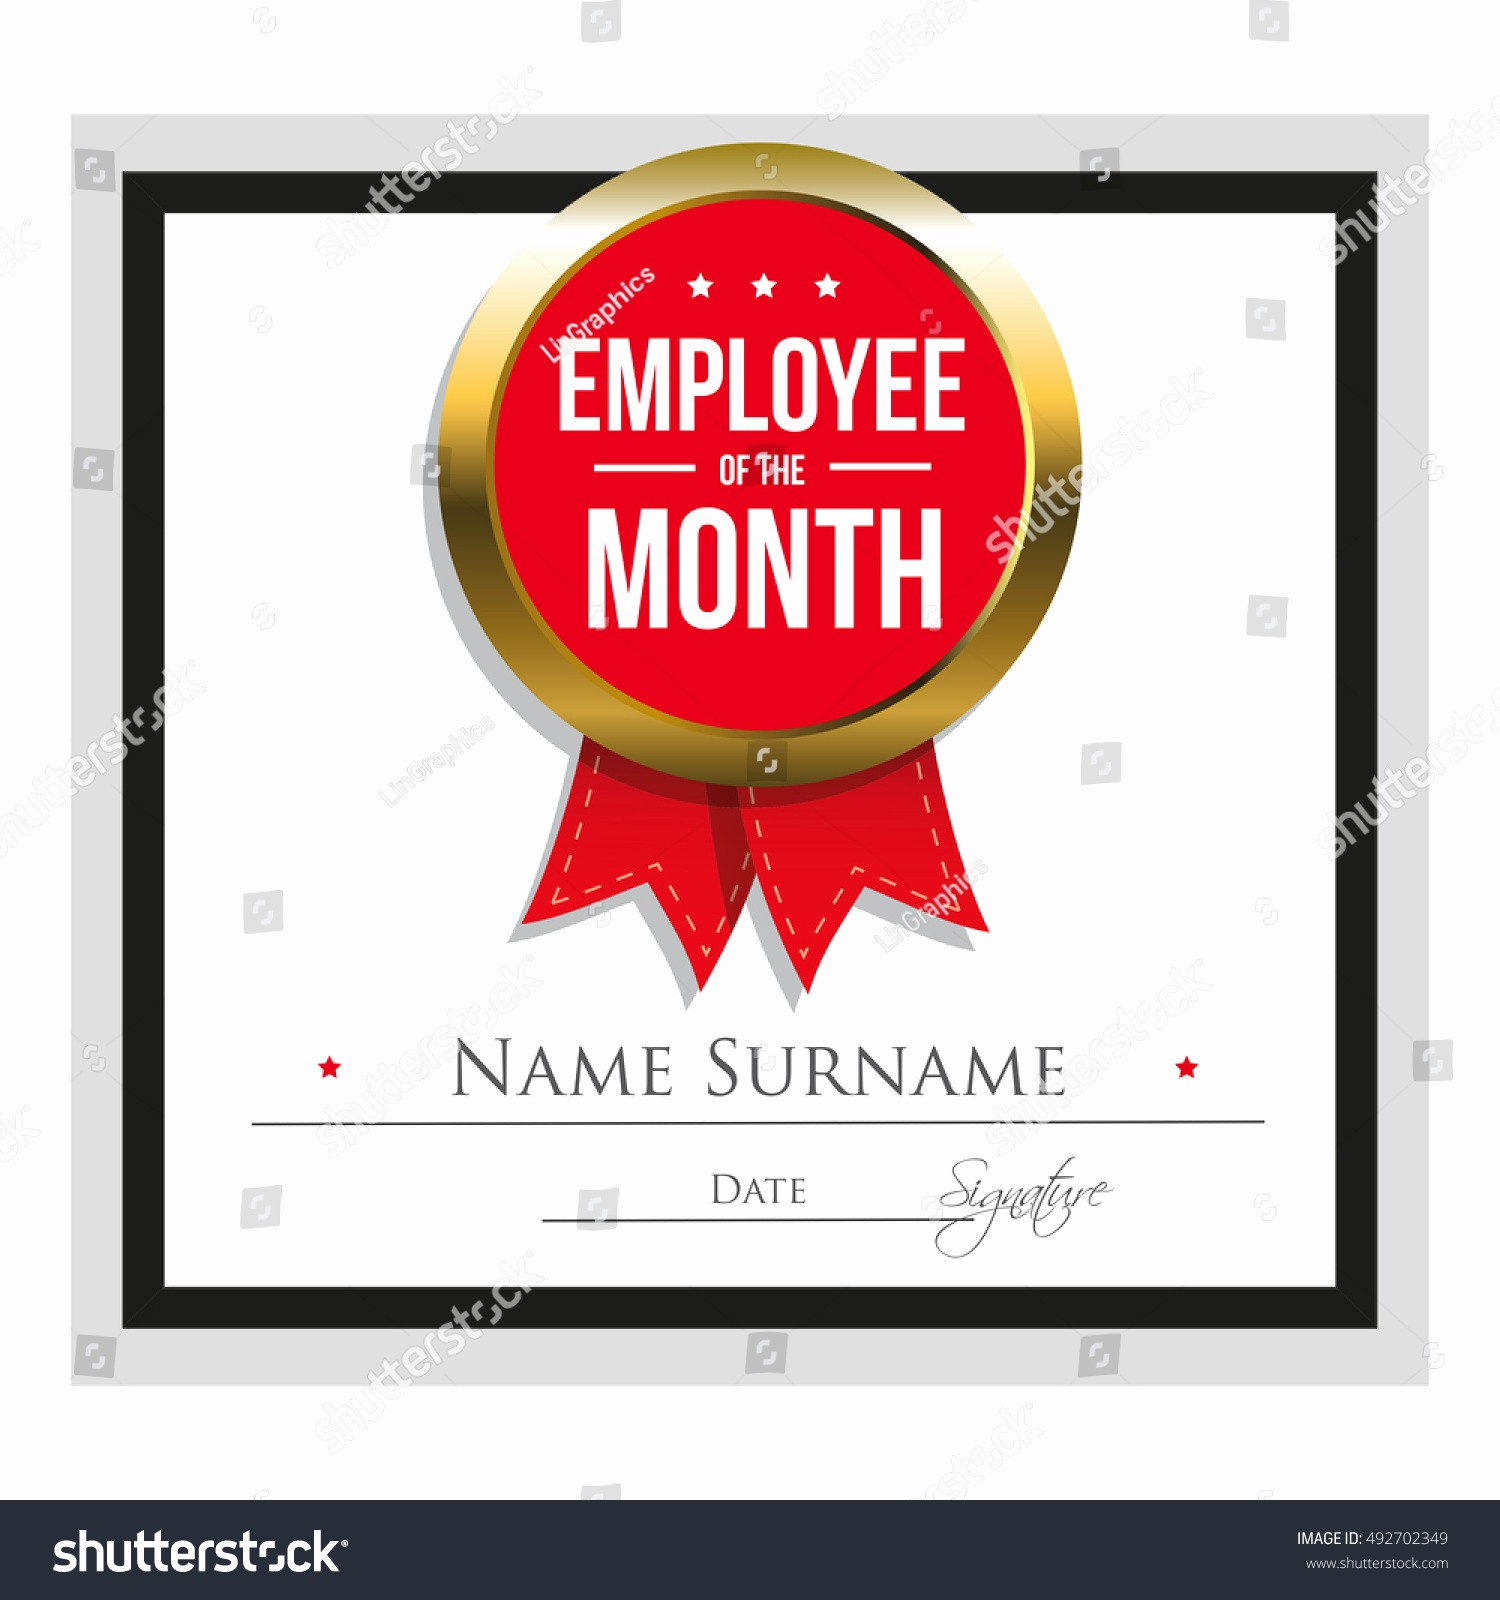 Employee Of the Year Certificates Luxury Employee Month Certificate Template Stock Vector